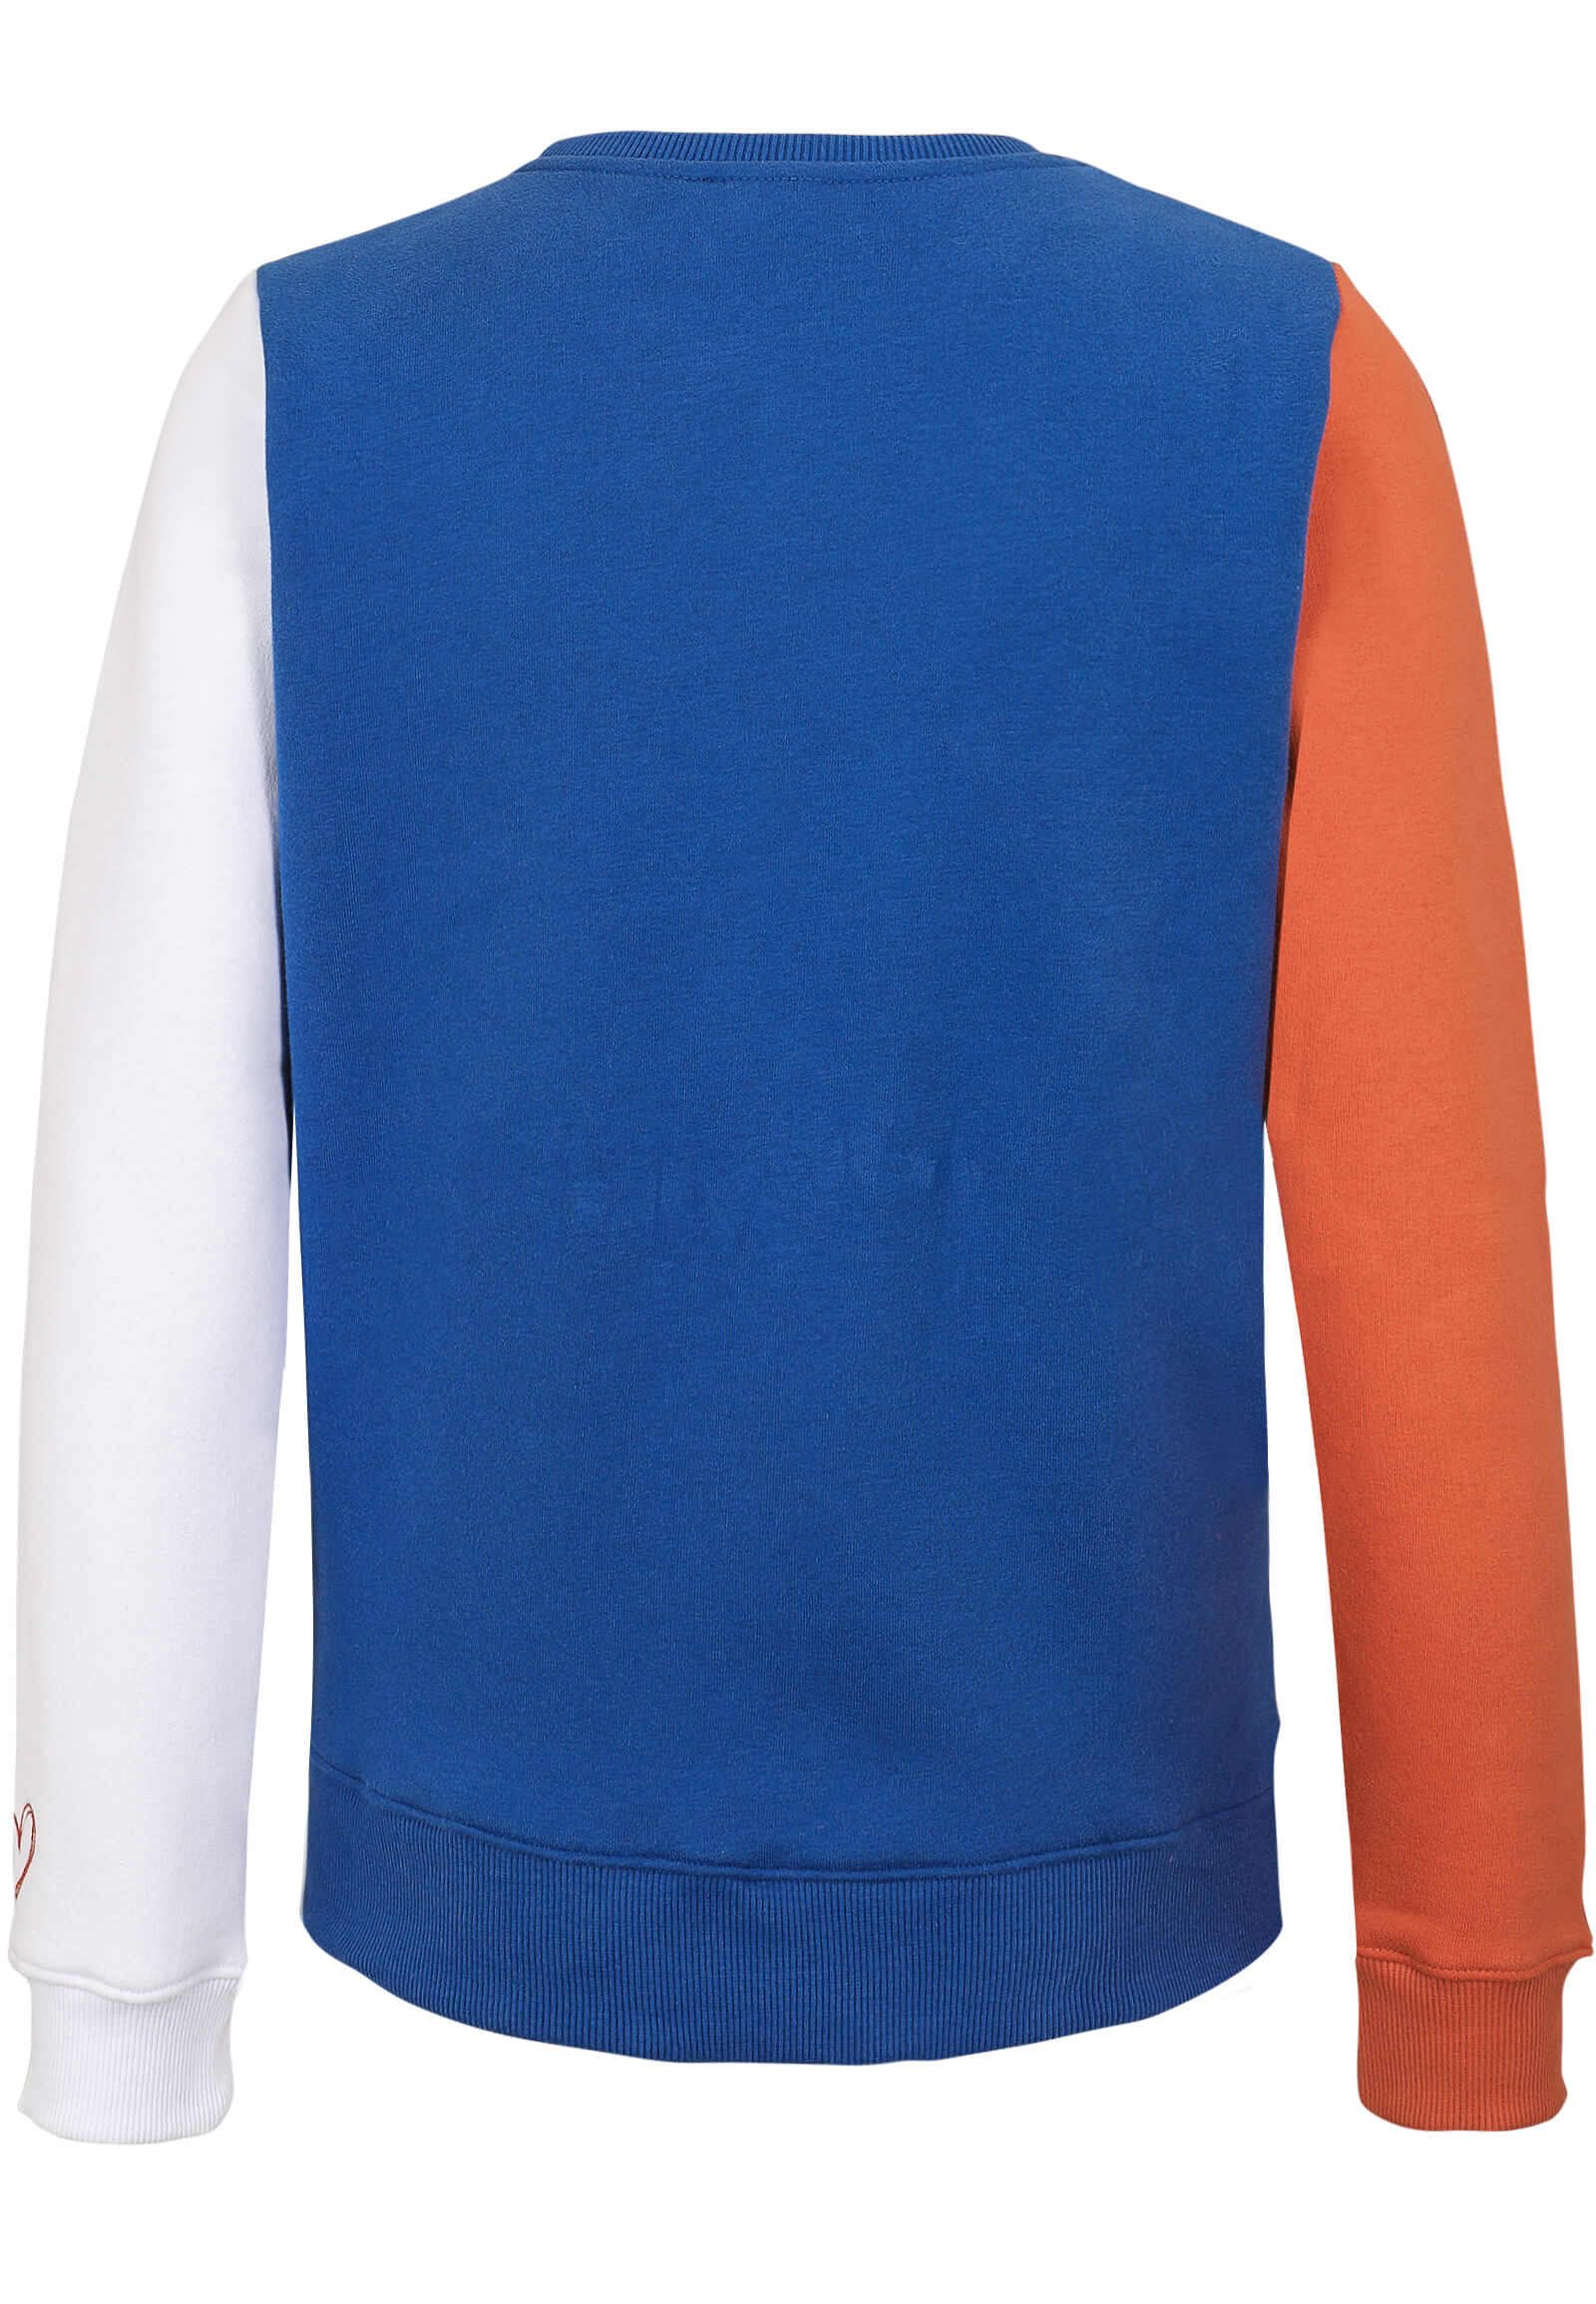 Colourblock Sweatshirt